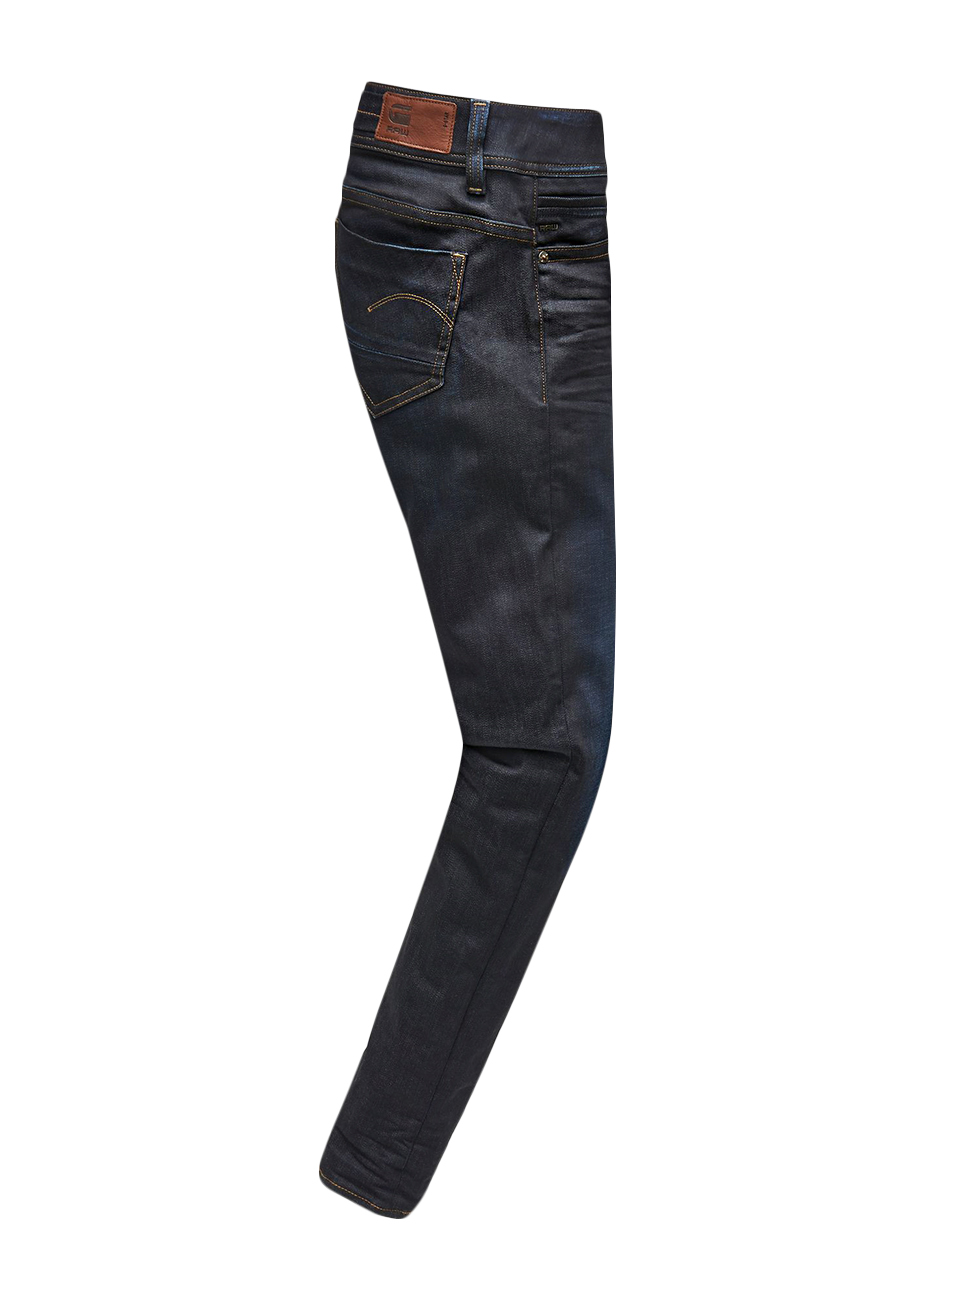 g-star-damen-jeans-midge-saddle-mid-waist-straight-fit-blau-dark-aged, 99.95 EUR @ jeans